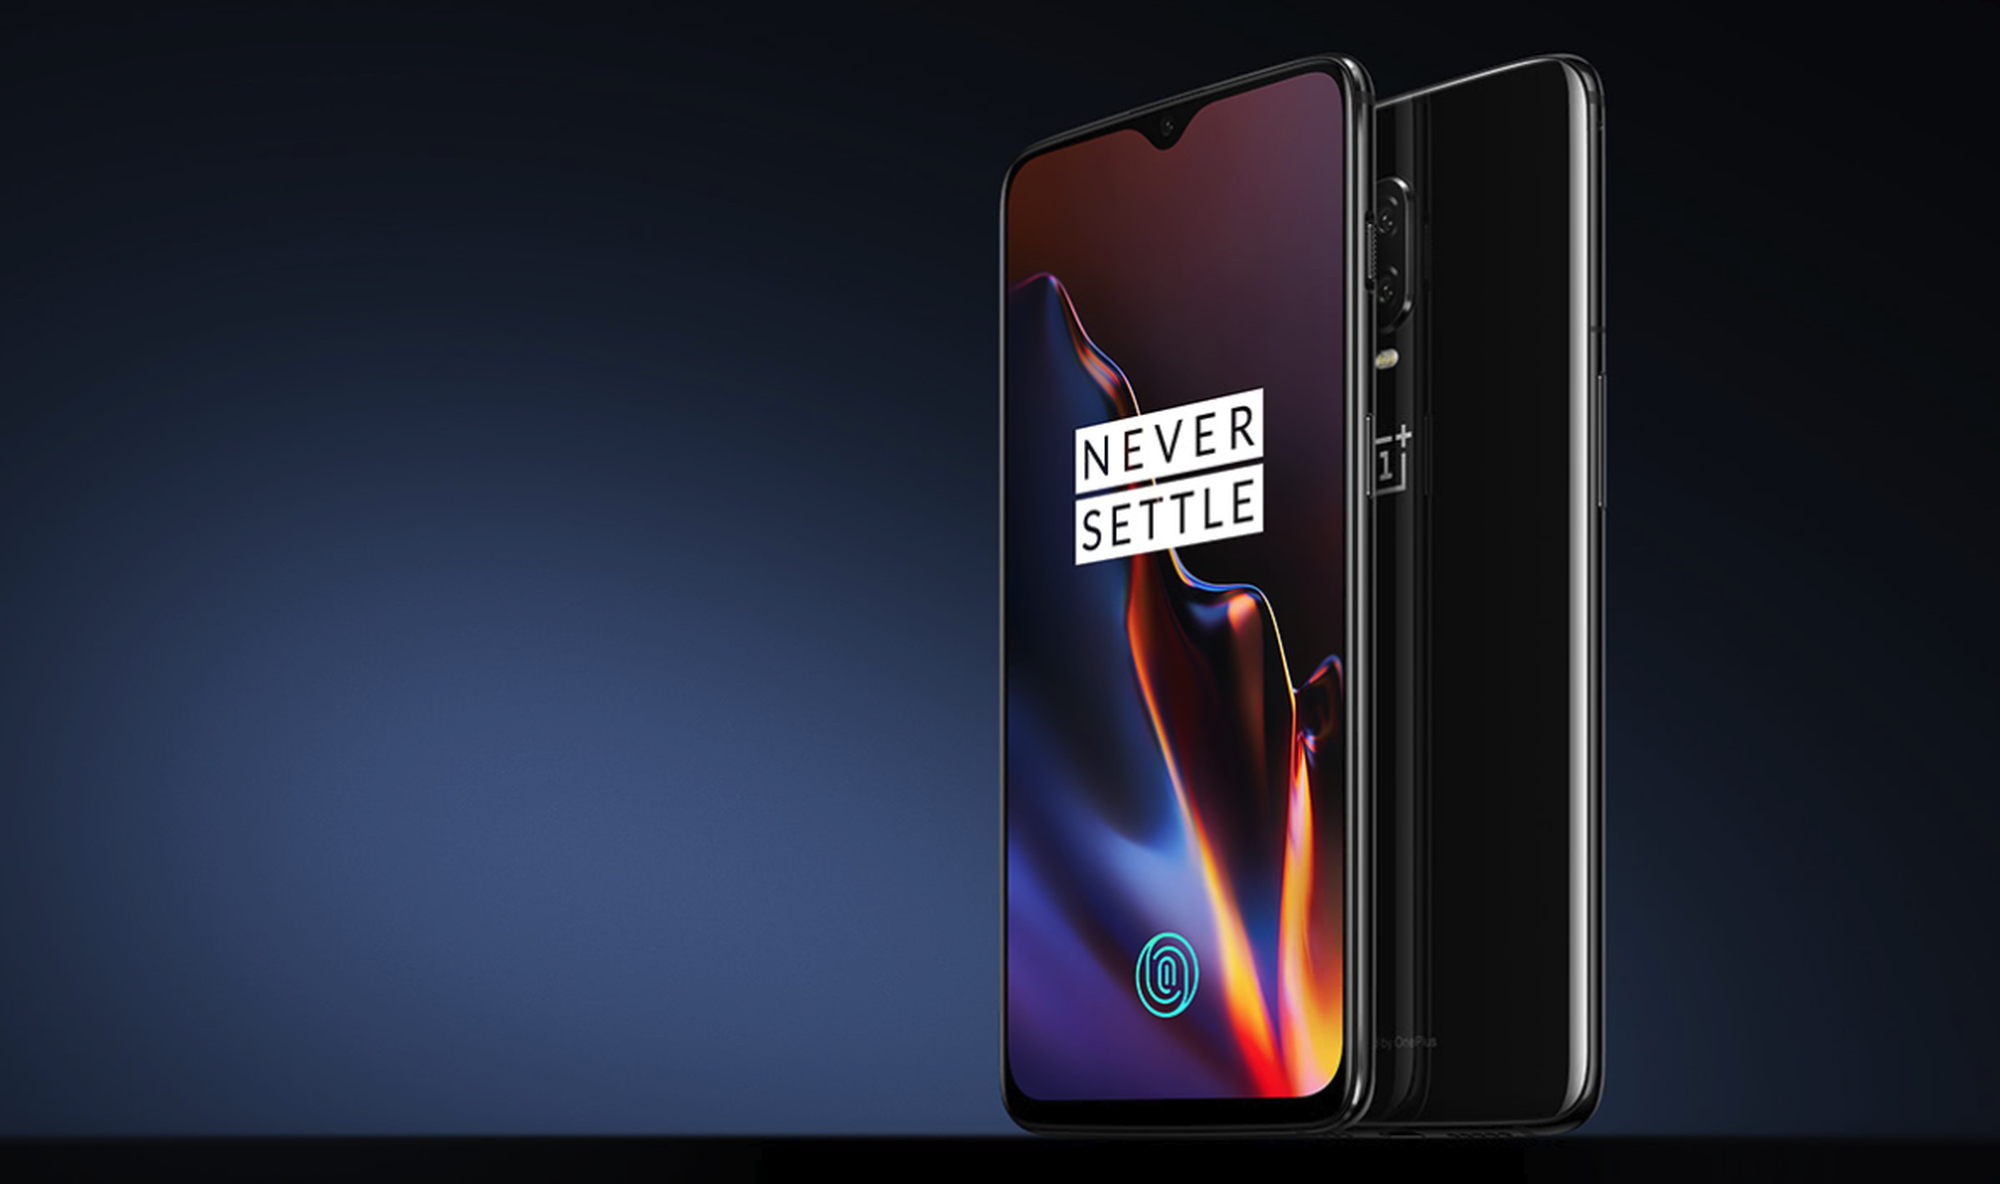 T-Mobile OnePlus 6T software update enhances in-display fingerprint scanner, Nightscape, and more